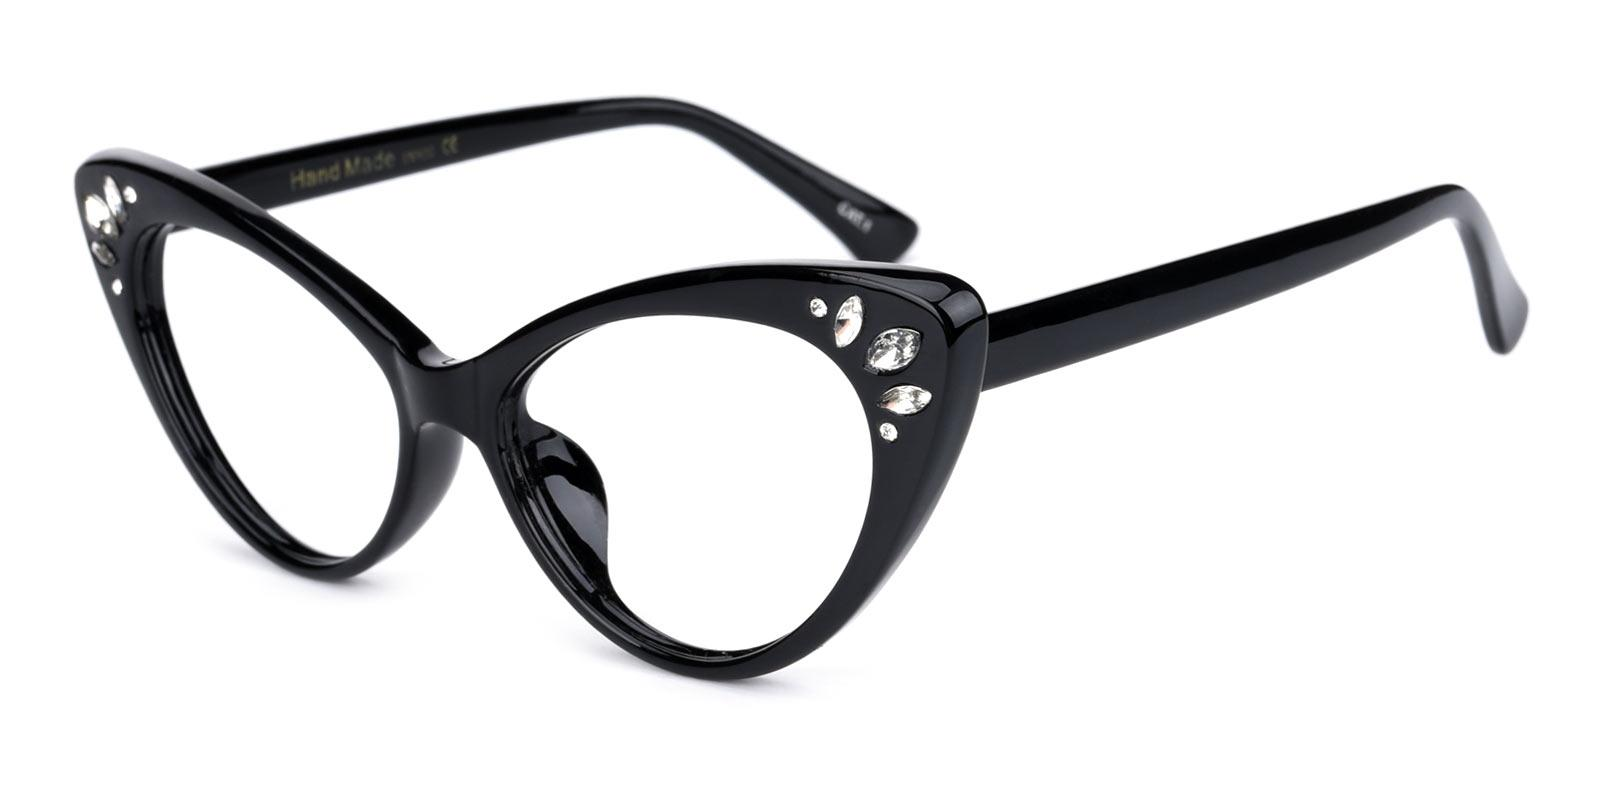 Samber-Black-Cat-Plastic-Eyeglasses-additional1